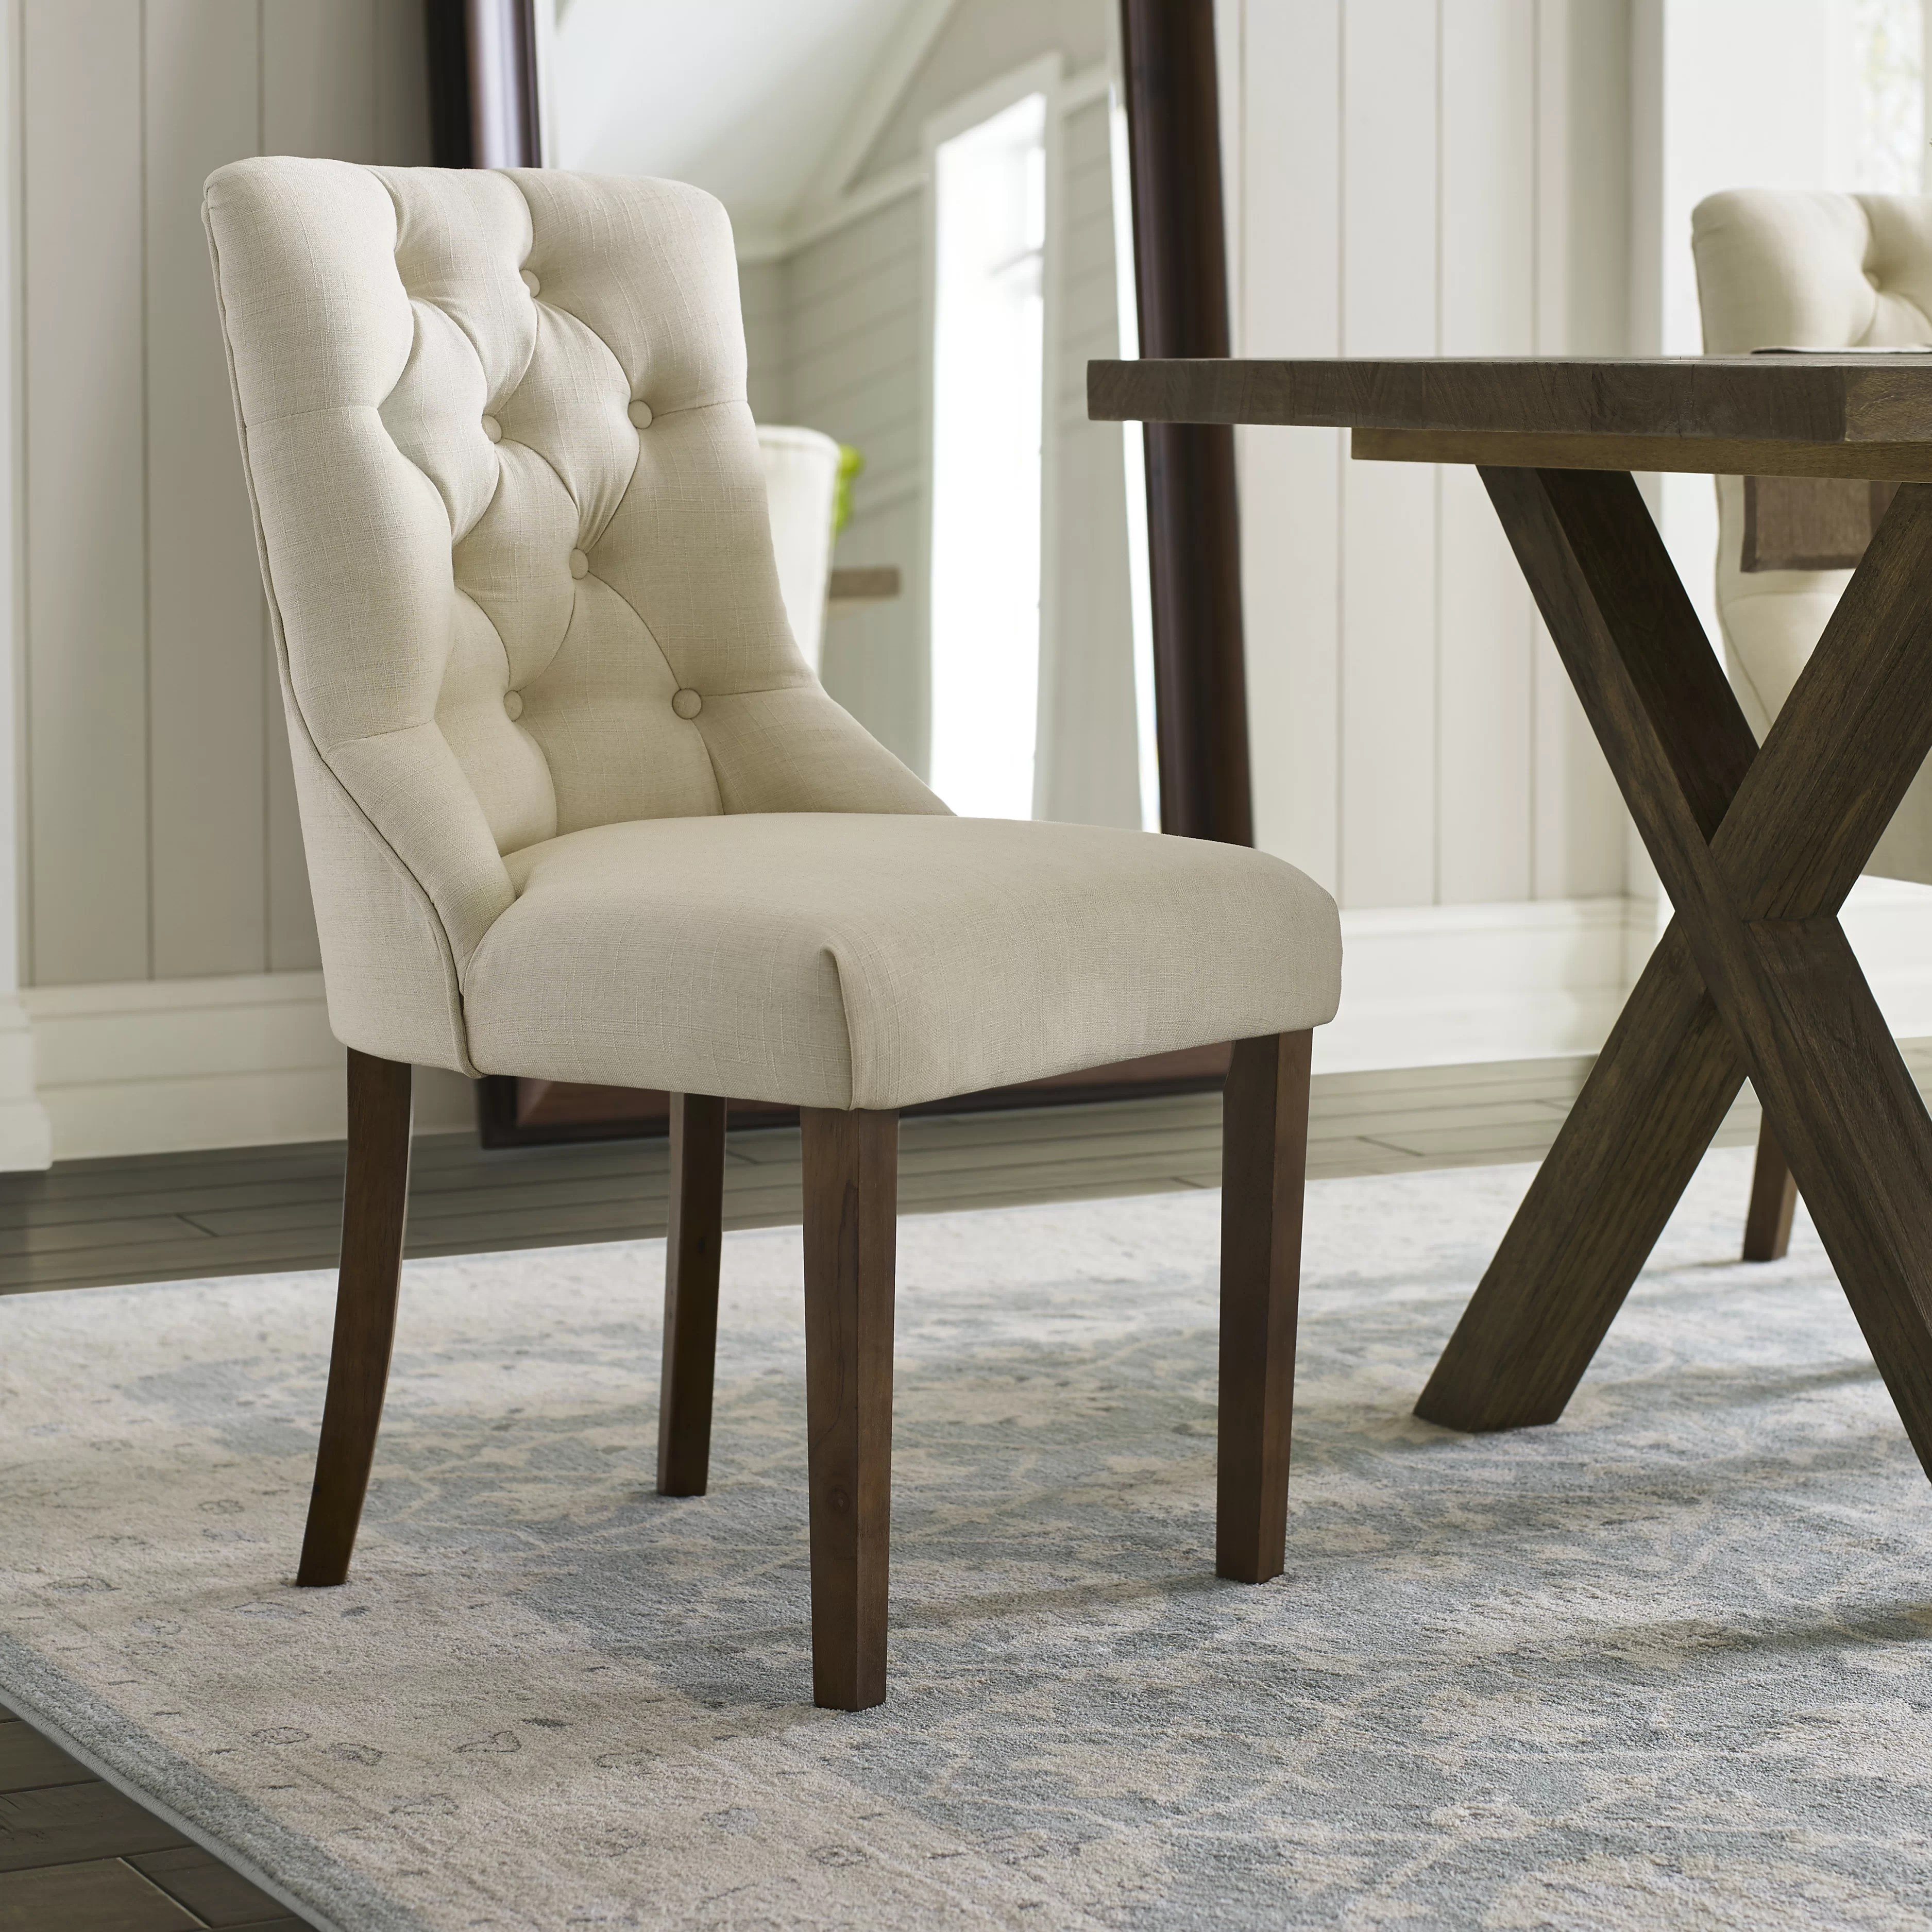 Dining Room Upholstered Chairs Atchison Upholstered Dining Chair